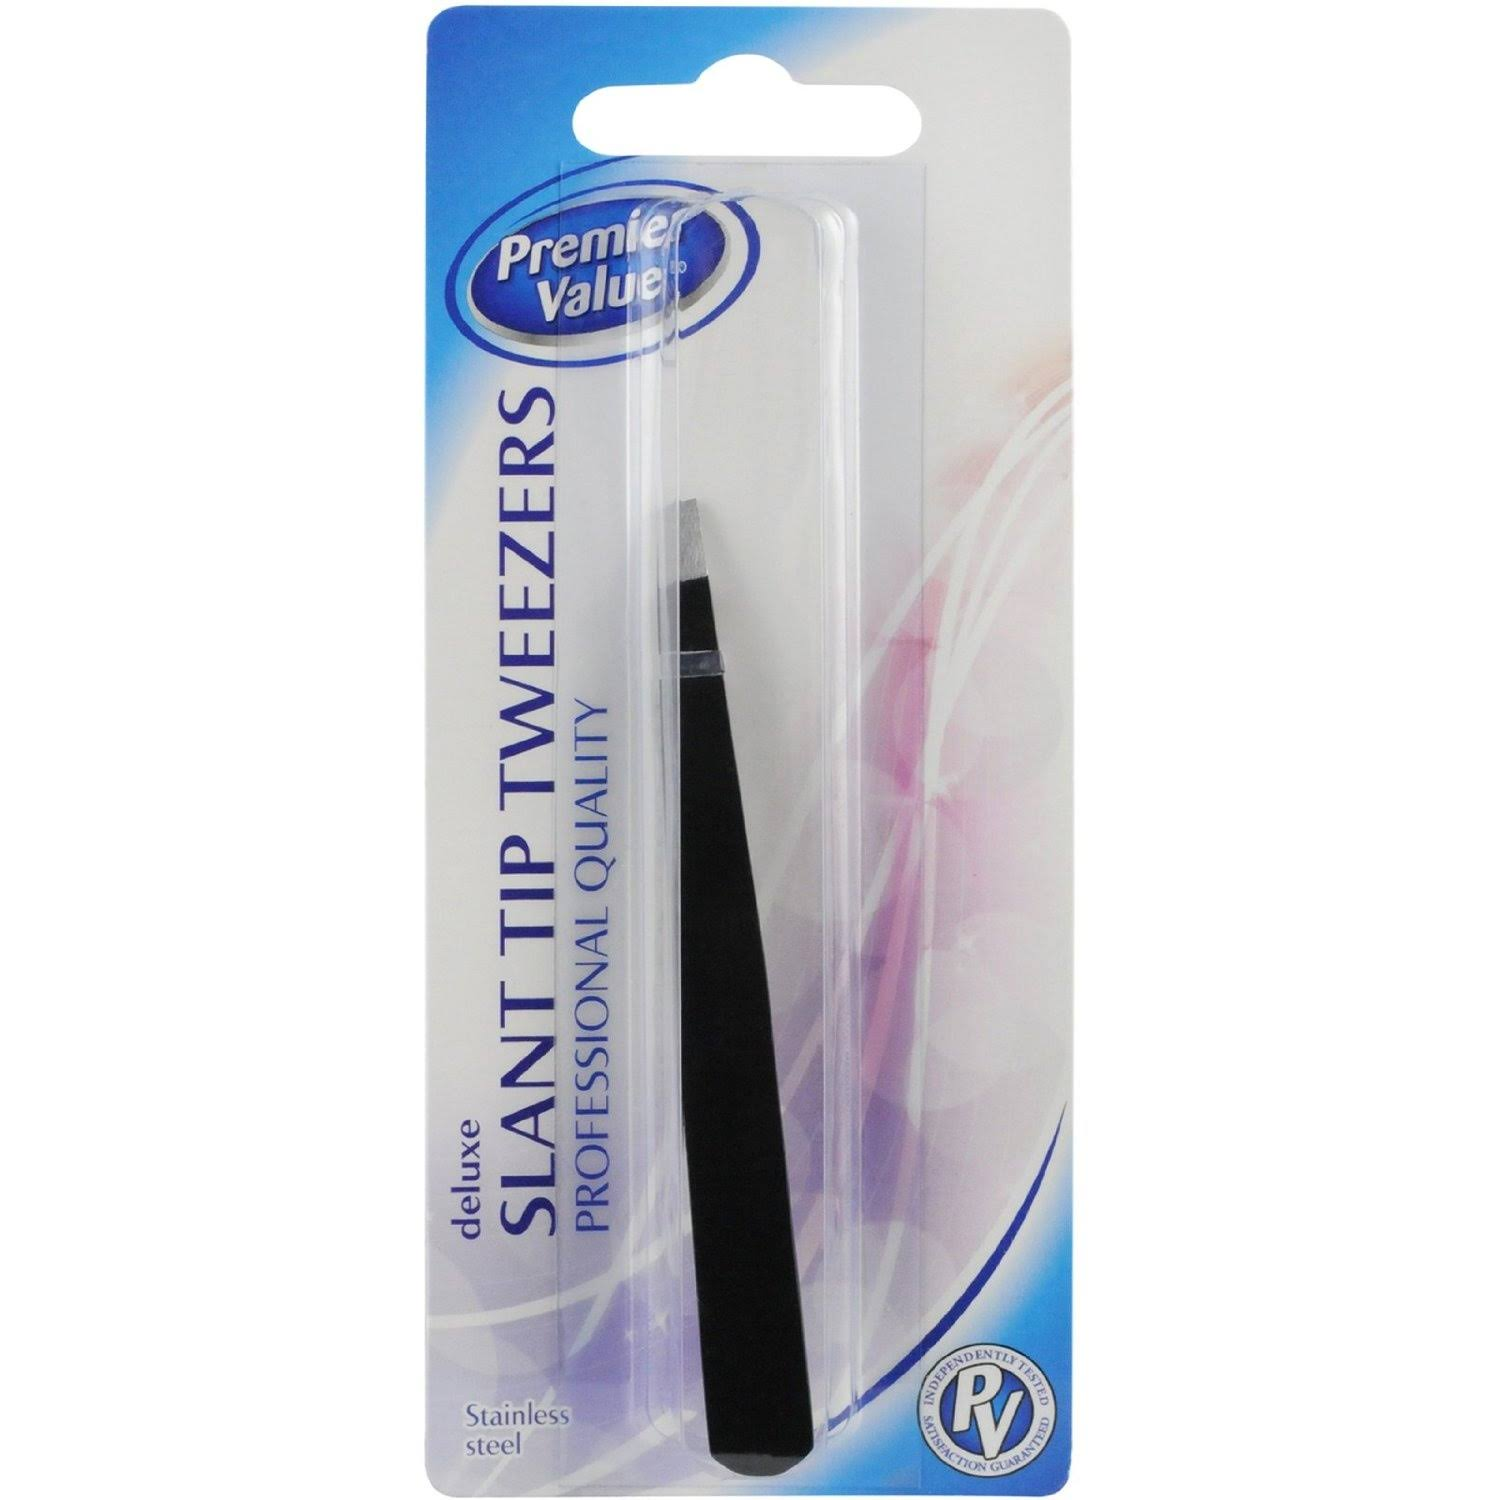 Premier Value Tweezers Stainless Steel - 1ct